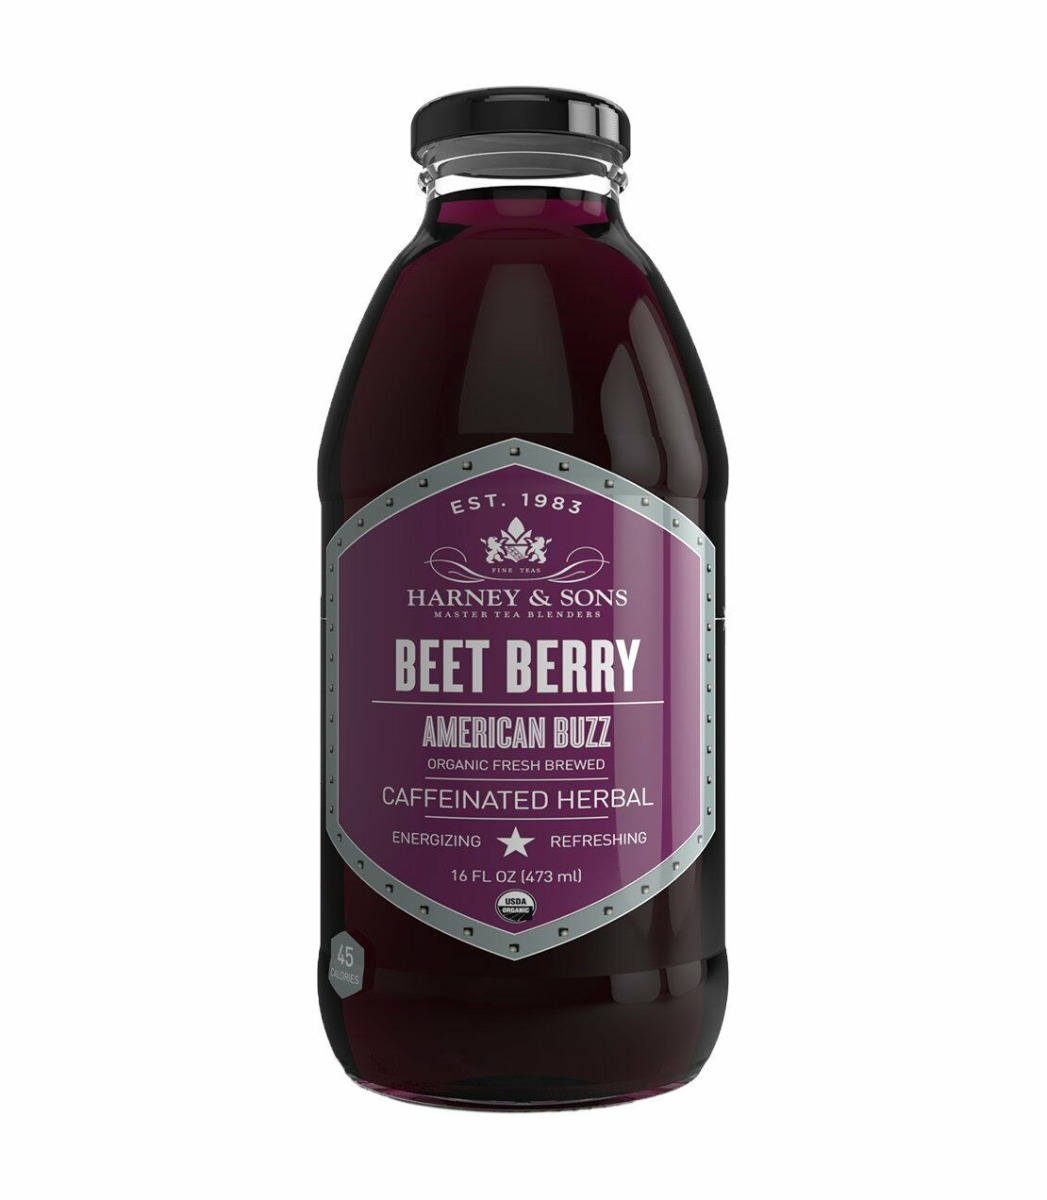 HARNEY & SONS: American Buzz Beet Berry Iced Tea, 16 fo